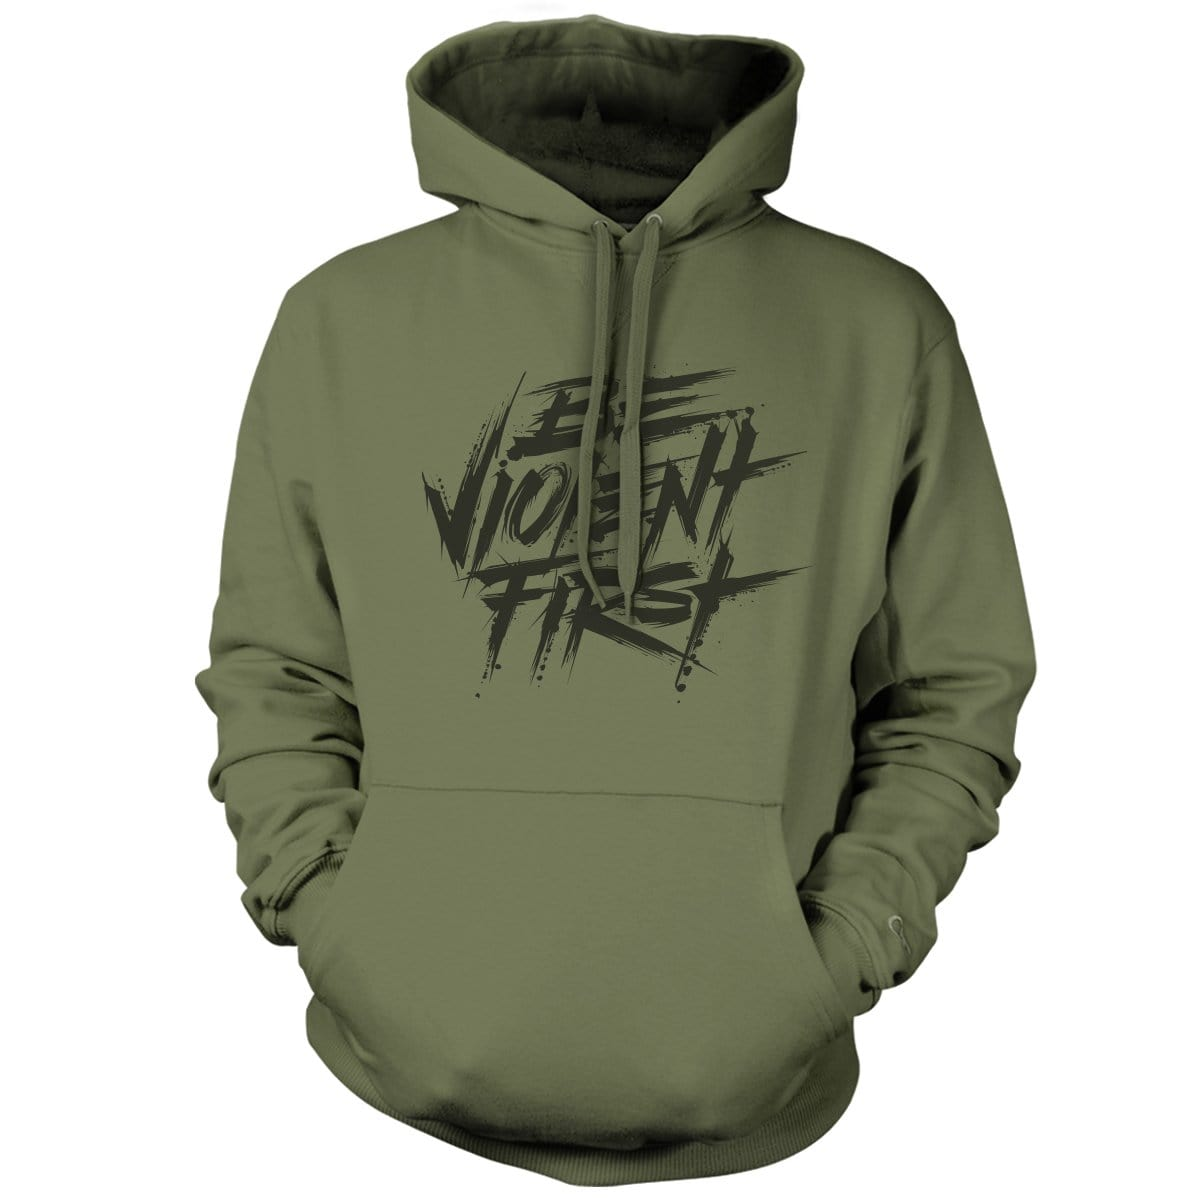 Be Violent First Hoodie - Military Green - Hoodies - Pipe Hitters Union